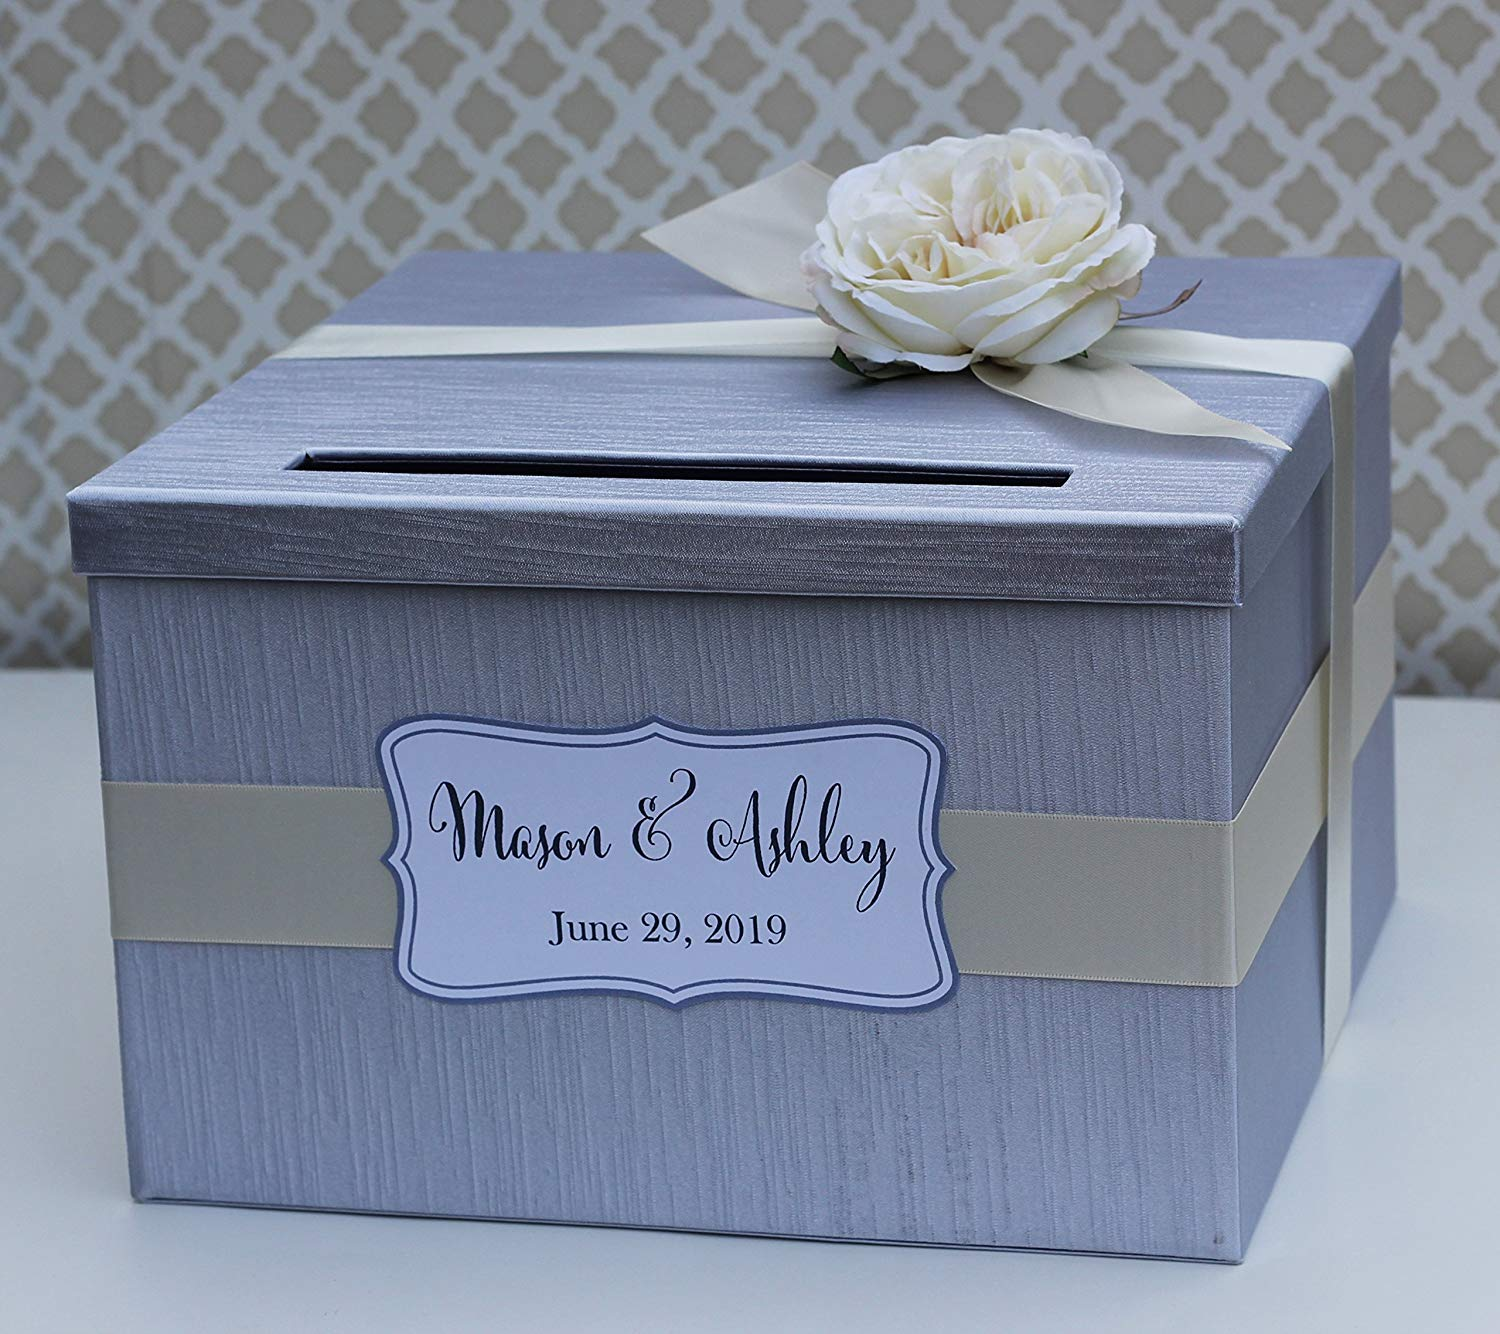 Woodcard Boxes For Wedding Reception Personalized Card Box